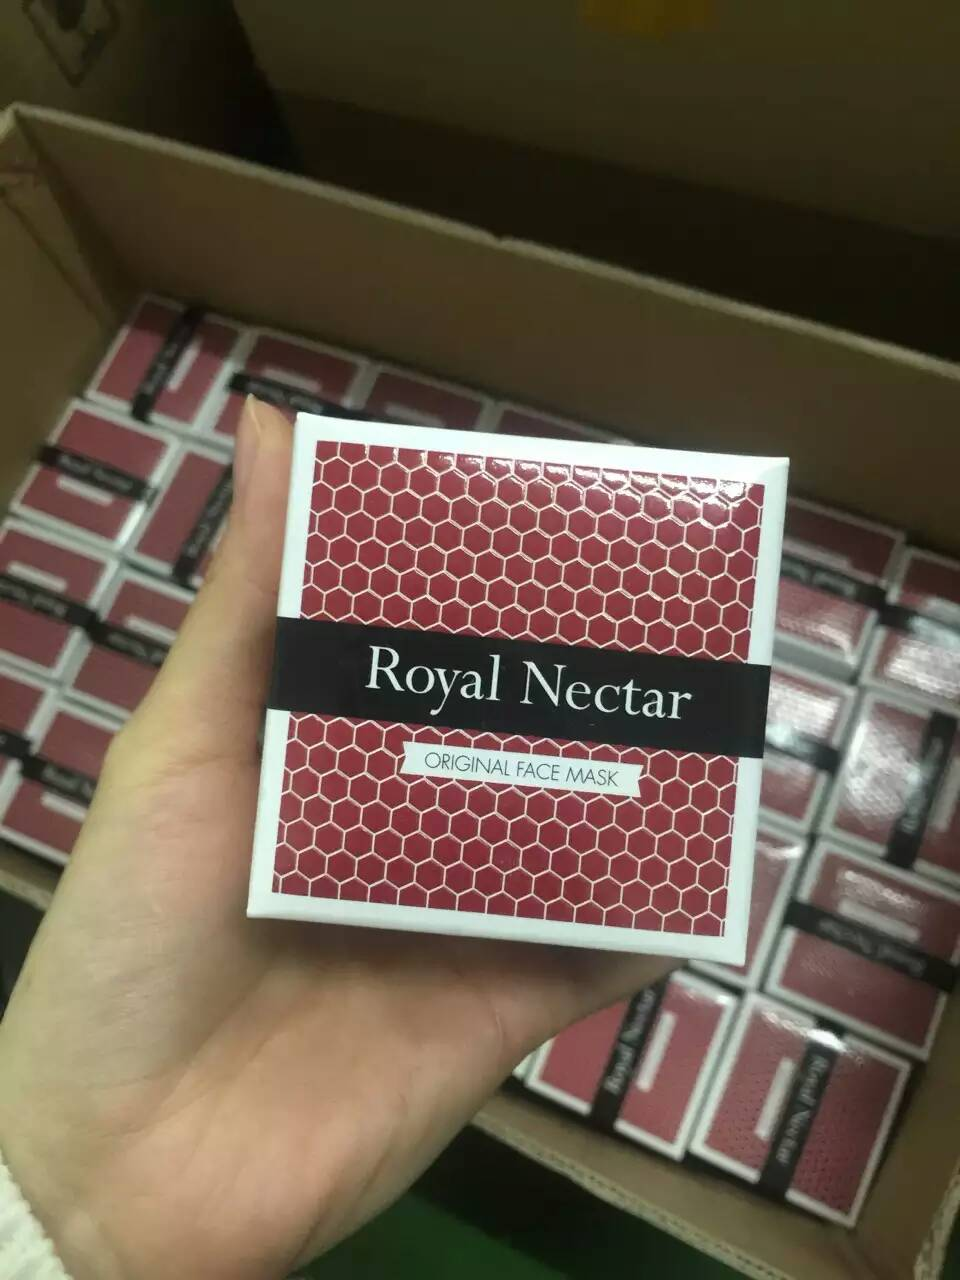 新西兰Royal Nectar皇家花蜜-蜂毒面膜 提拉紧致 抗衰老收缩毛孔